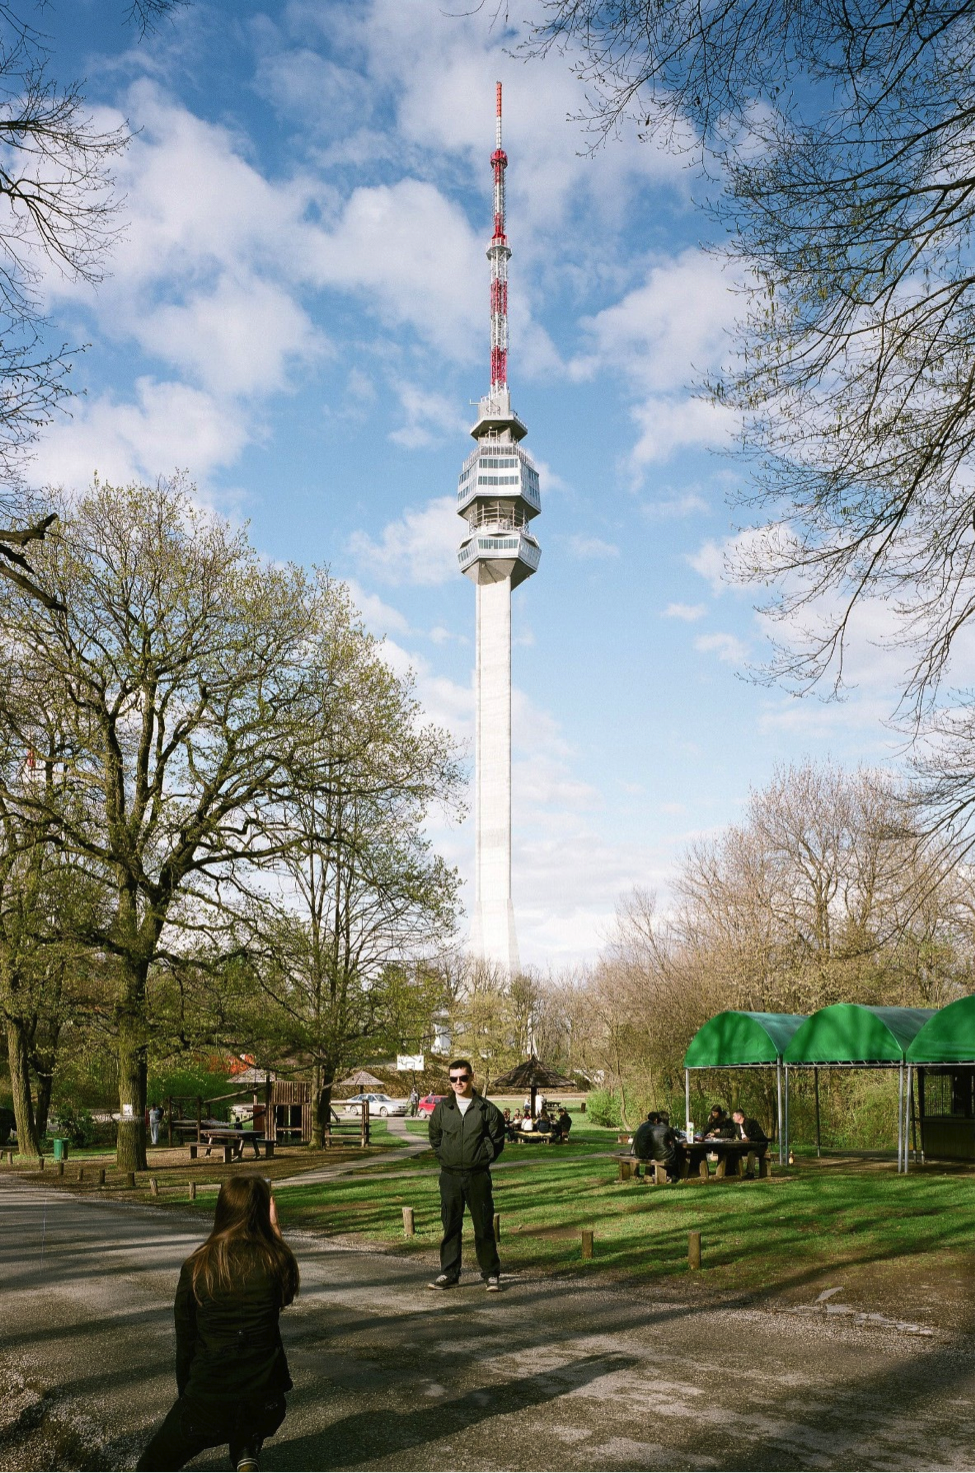 Avala Television Tower, Belgrade is a 204.5m tall telecommunication tower located in the Avala mountains in the periphery of Belgrade.